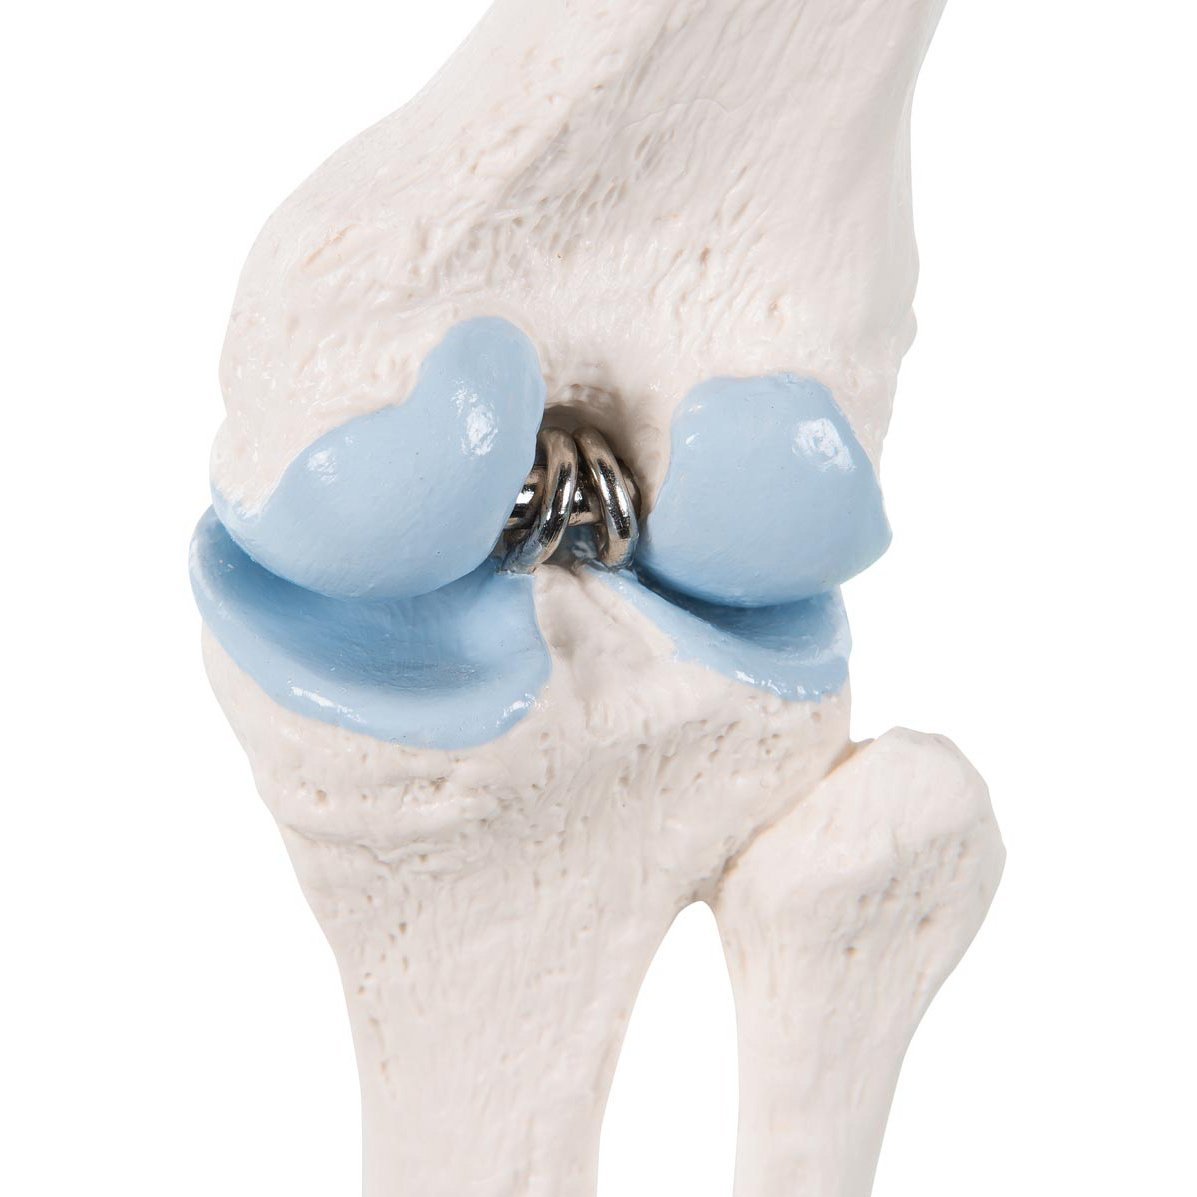 3b Scientific A85 1 Mini Knee Joint With Cross Section Model